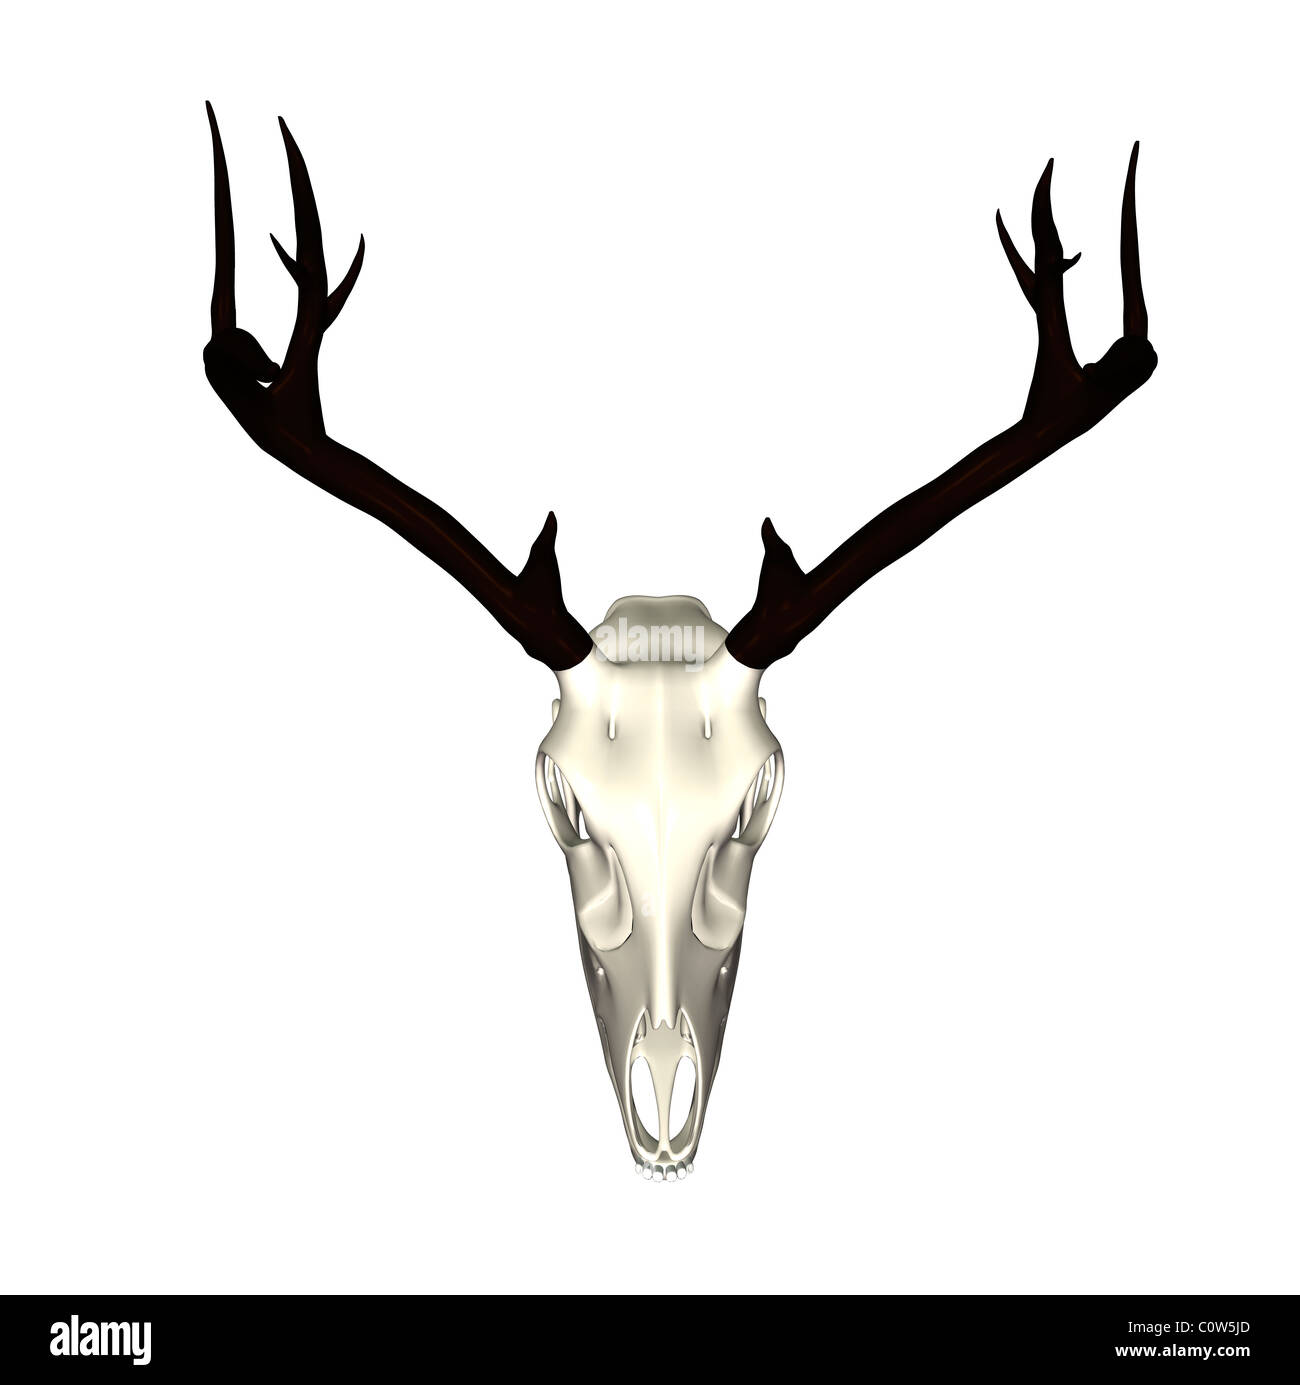 Deer Antlers Cut Out Stock Images & Pictures - Alamy